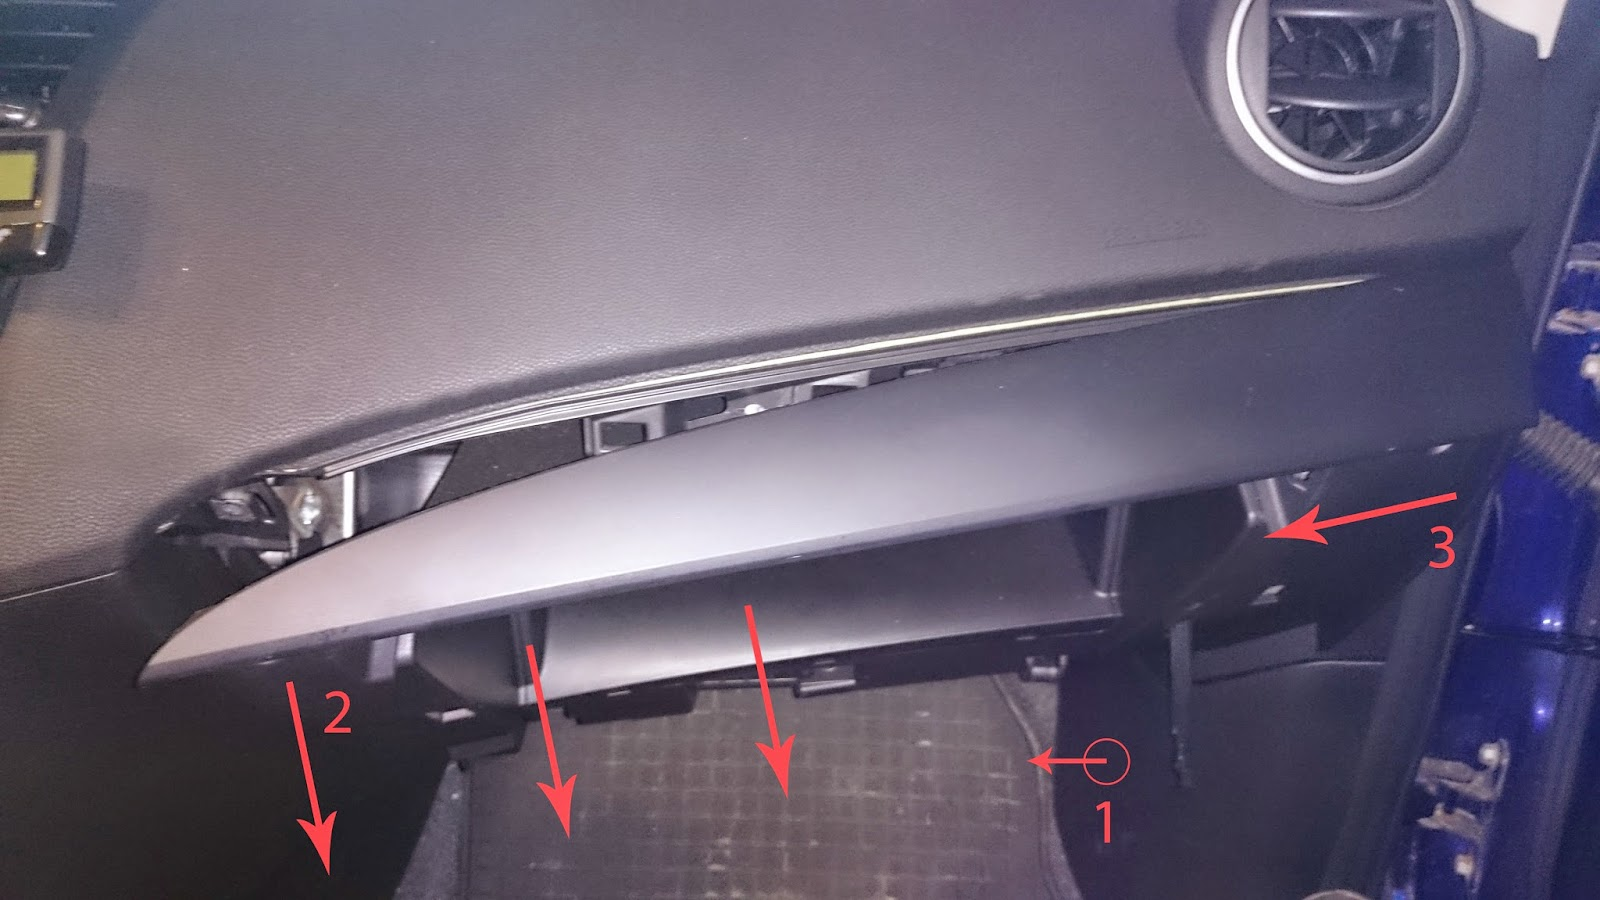 The Hole Pull It Towards You To Detach Lower Panel Will Need Some Force Do That Dashboard Holds Together Quite Well So Makes Sense